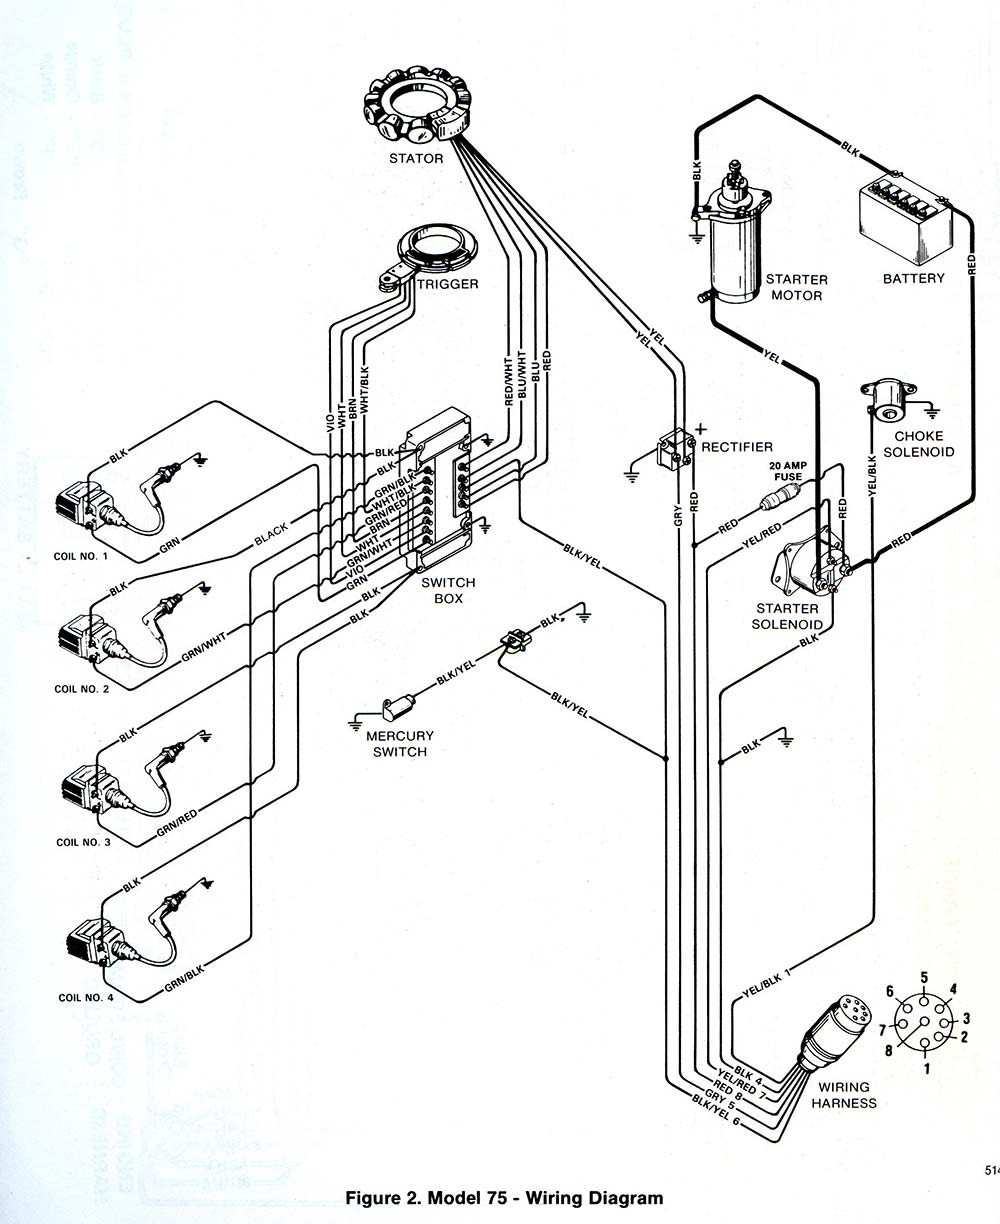 1998 Mercury Outboard Wiring Diagram Free Picture